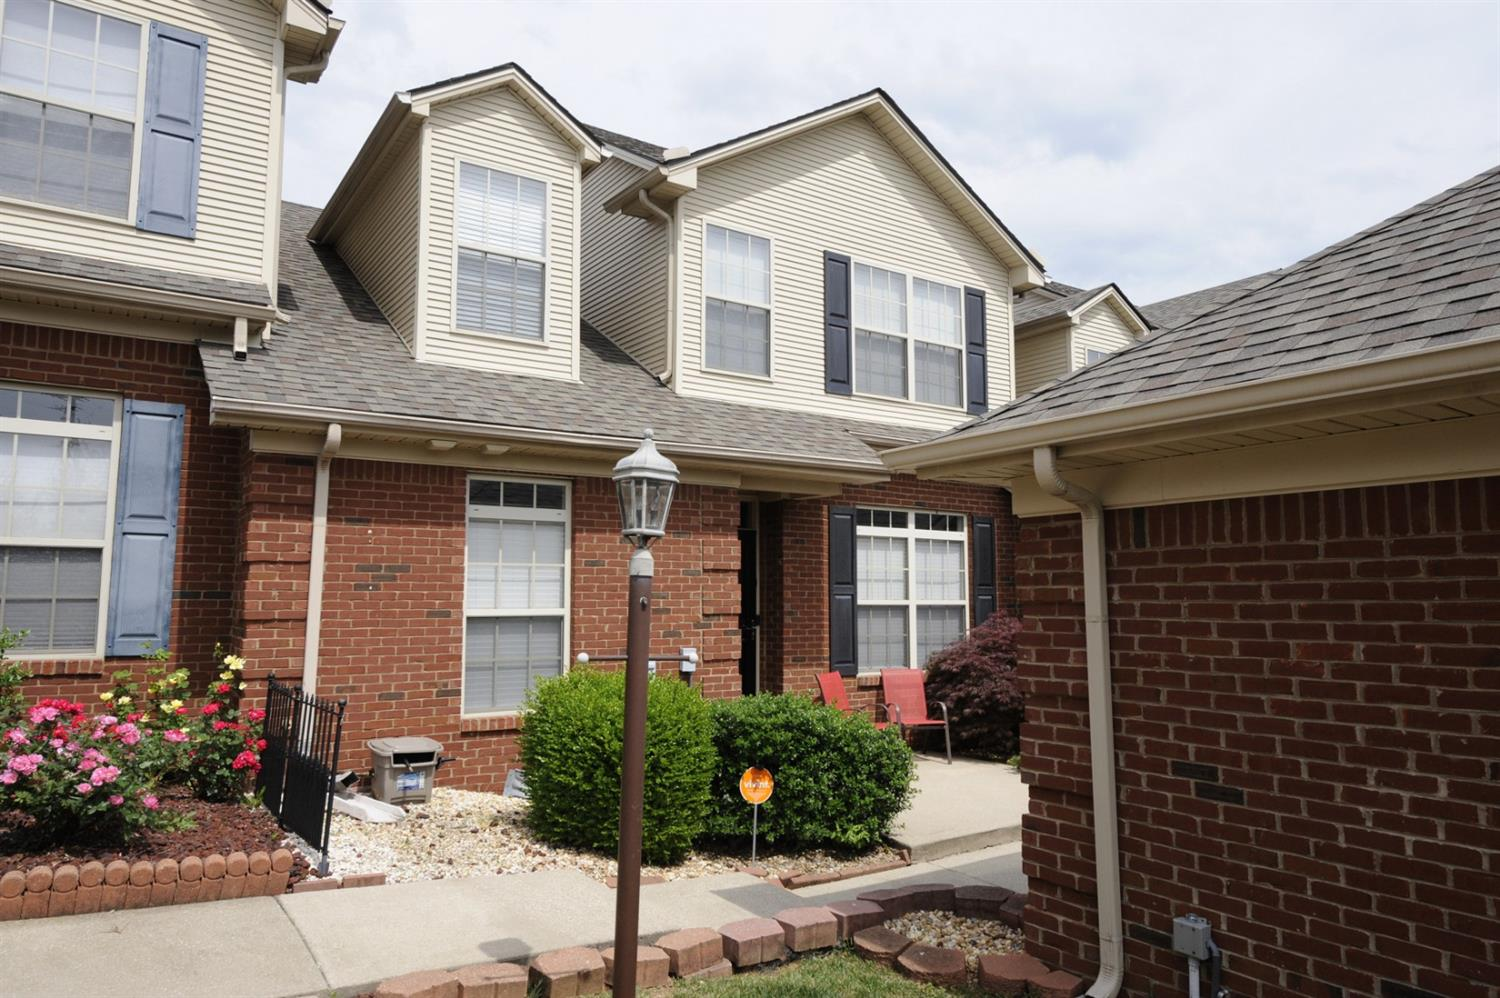 Looking%20for%20the%20perfect%20lock%20and%20leave%20townhome?%20Check%20this%20out!%2015%20minutes%20from%20locking%20your%20door%20to%20downtown%20Lexington.%20%20First%20floor%20master,%20spacious%202nd%20floor%20bedroom,%20with%20loft%20area%20and%20a%20large%20walk-in%20closet.%20Separate%20utility%20room%20and%20saving%20the%20best%20for%20last;%20relax%20on%20your%20covered%20back%20porch/patio%20overlooking%20Canewood%20Golf%20course.%20A%20two%20car%20detached%20garage%20with%20ample%20space%20for%20storage%20makes%20this%20the%20ideal%20home%20for%20an%20empty%20nester,%20first%20time%20home%20buyer%20or%20a%20second%20home%20that%20is%20an%20easy%20drive%20to%20the%20Kentucky%20Horse%20Park,%20all%20University%20of%20Kentucky%20sporting%20events%20not%20to%20mention%20the%20Georgetown%20Tigers!